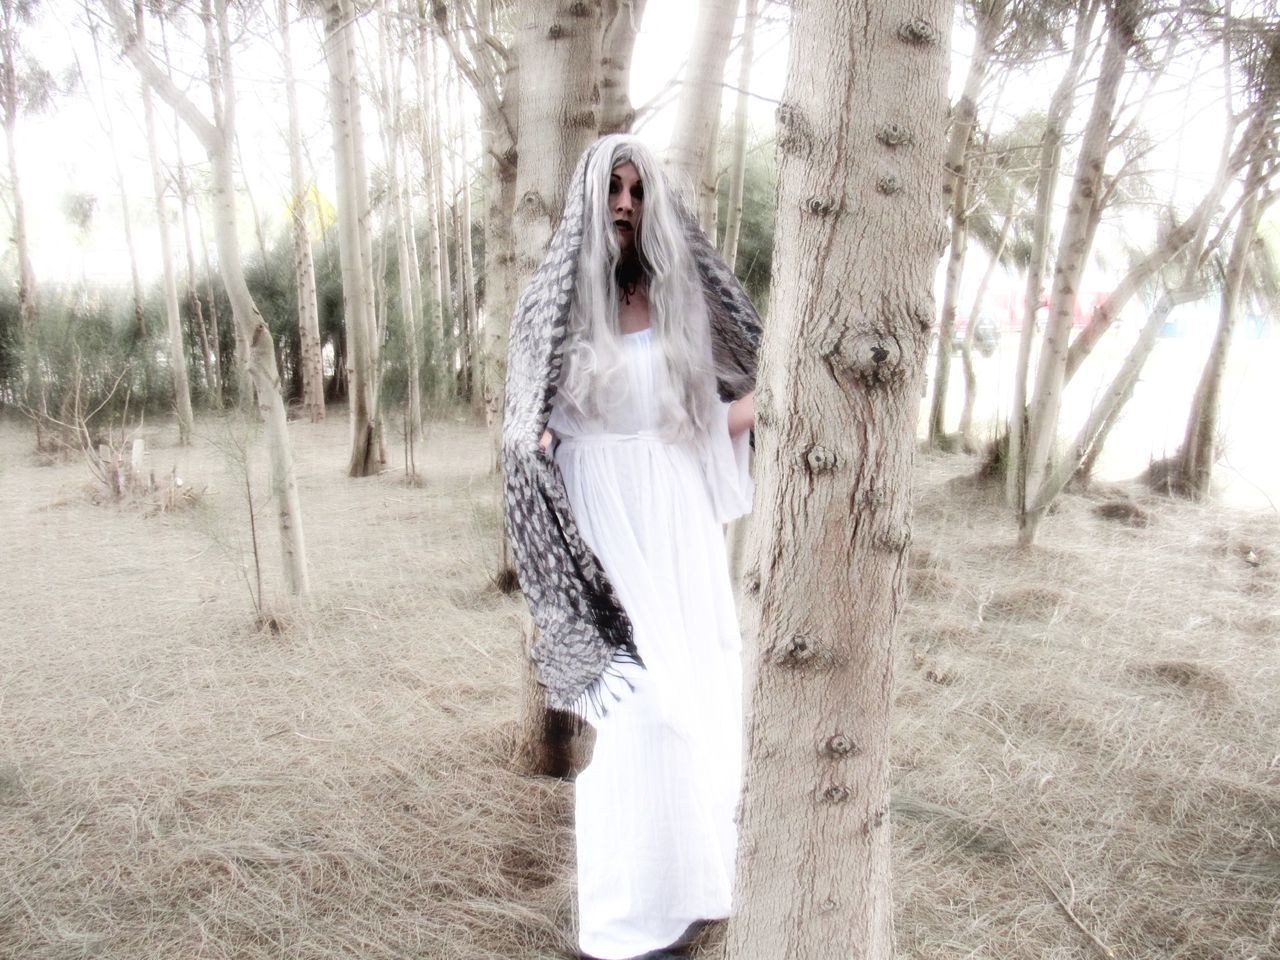 Trance Adult Day Grass Nature On The Dark Side One Person One Woman Only Outdoors Portrait Scarf Kind Of Day Sky Strange Things Happen Everyday Tree White Dress